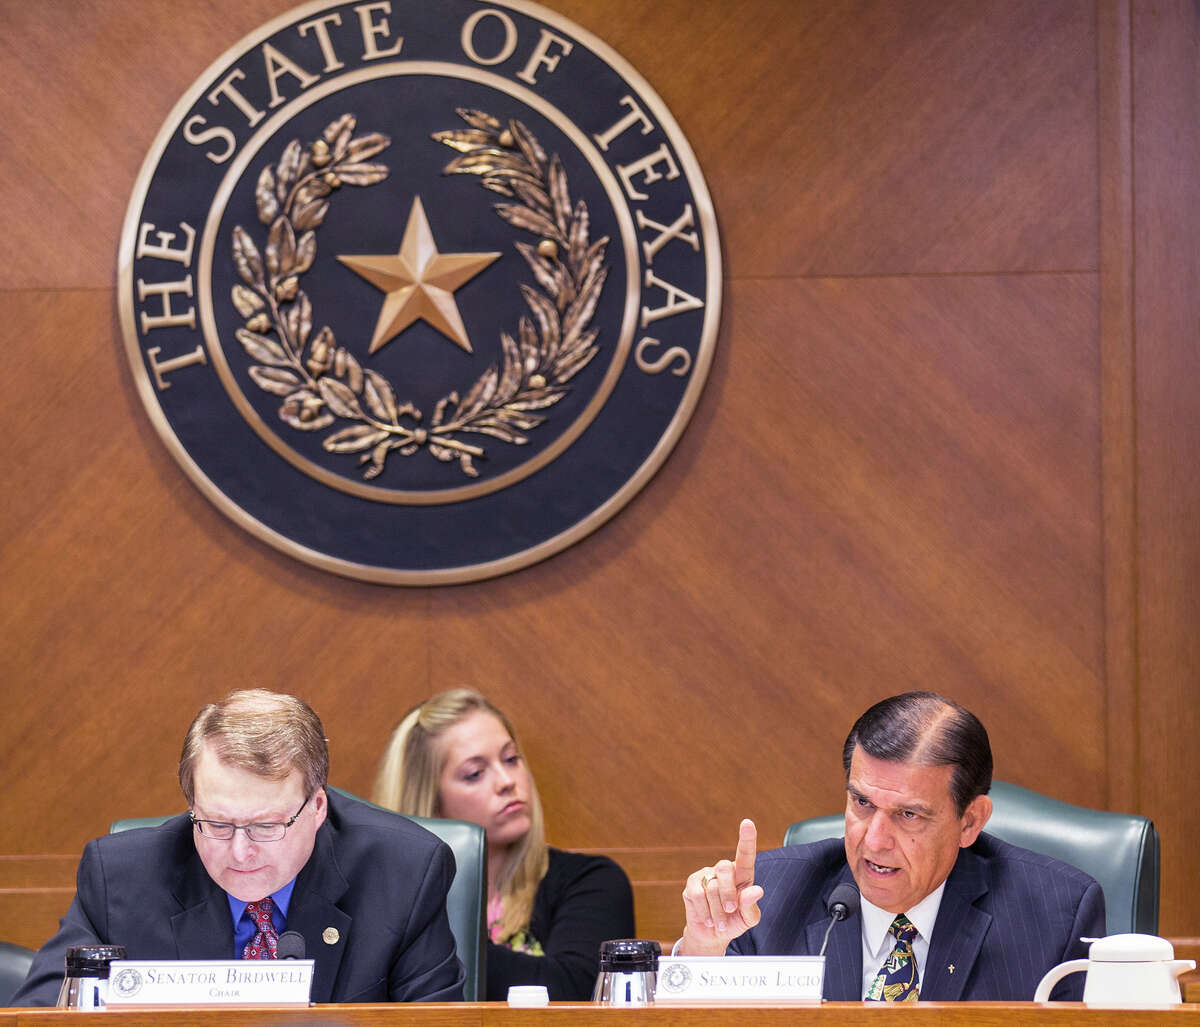 """Sen. Brian Birdwell, left, and Sen. Eddie Lucio look on during hearing on a bill that seeks to outlaw """"sanctuary cities"""" by prohibiting Texas governmental entities from passing laws to restrict police from asking about immigration status at the Texas State Capitol on Monday, March 16, 2015. (AP Photo/Austin American-Statesman, Ricardo B. Brazziell)"""